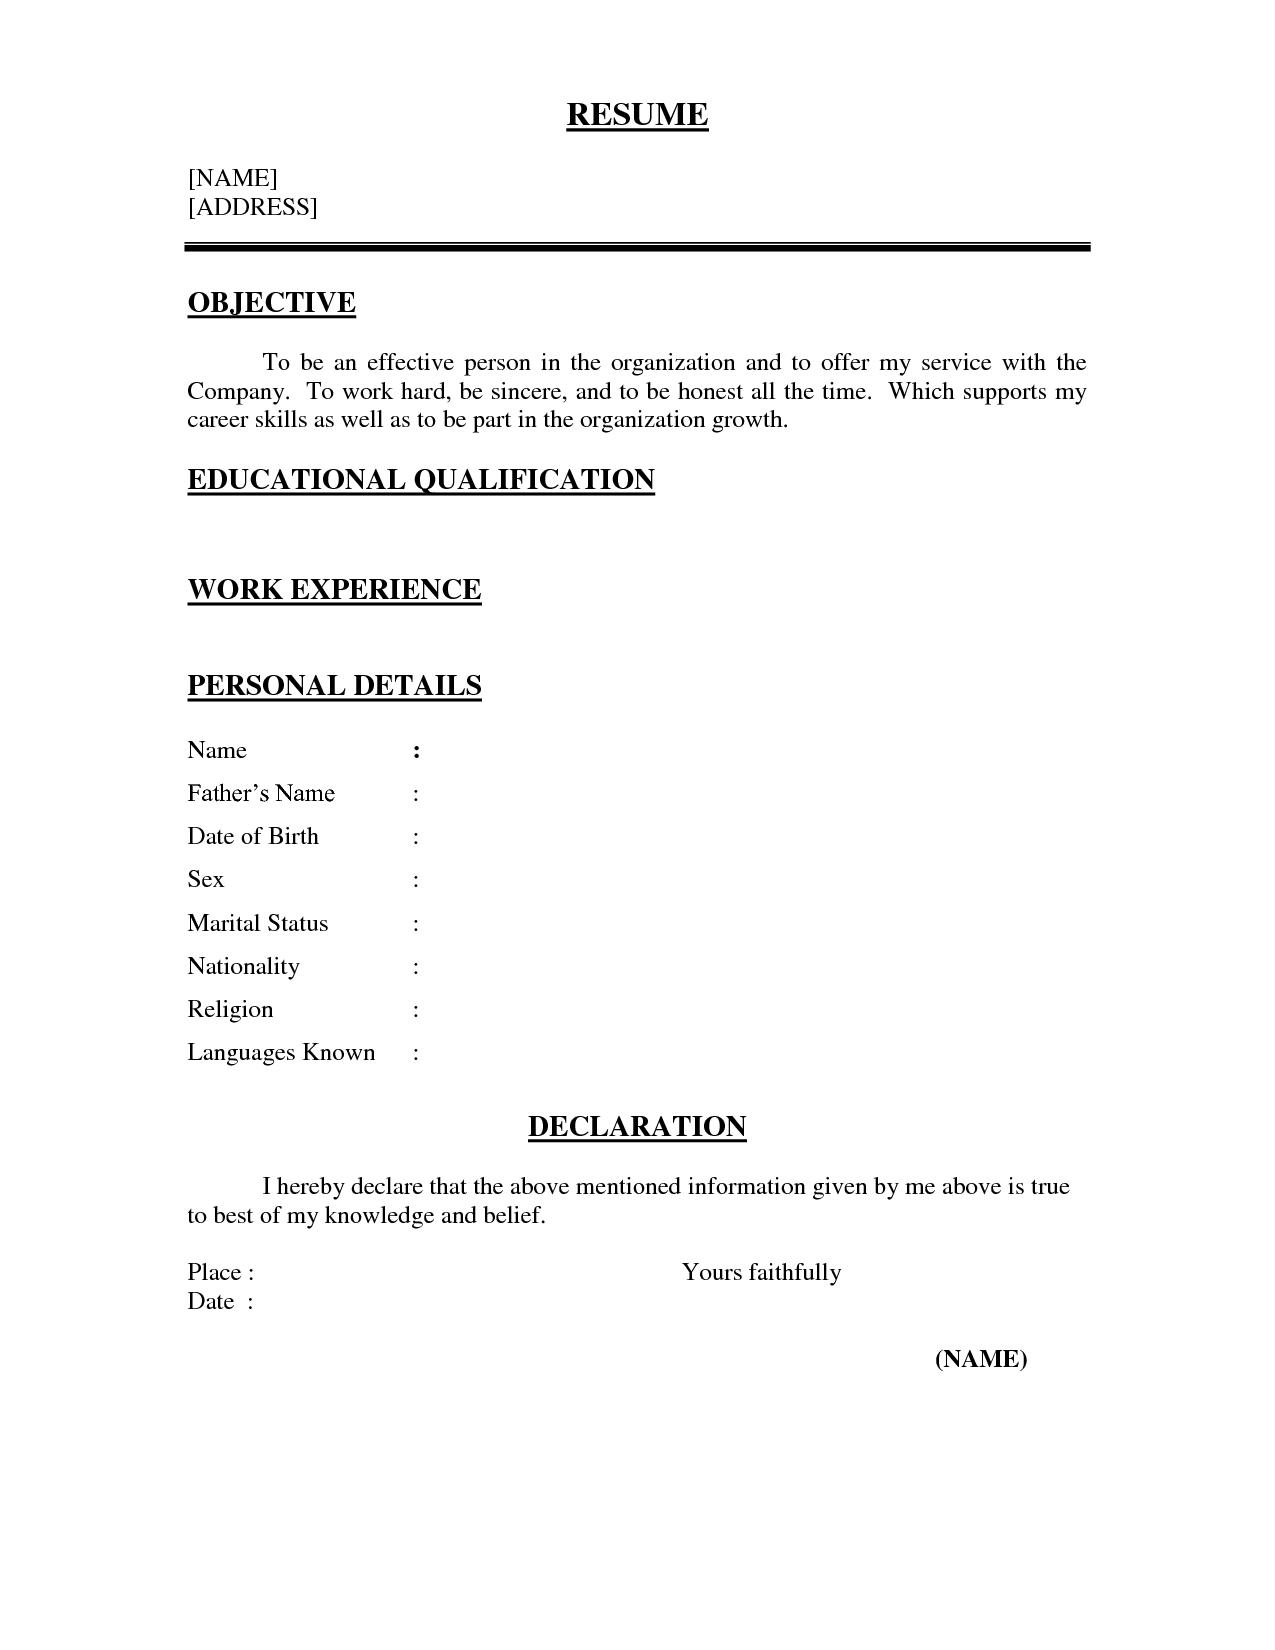 77 Cool One Page Resume Format For Freshers for Images